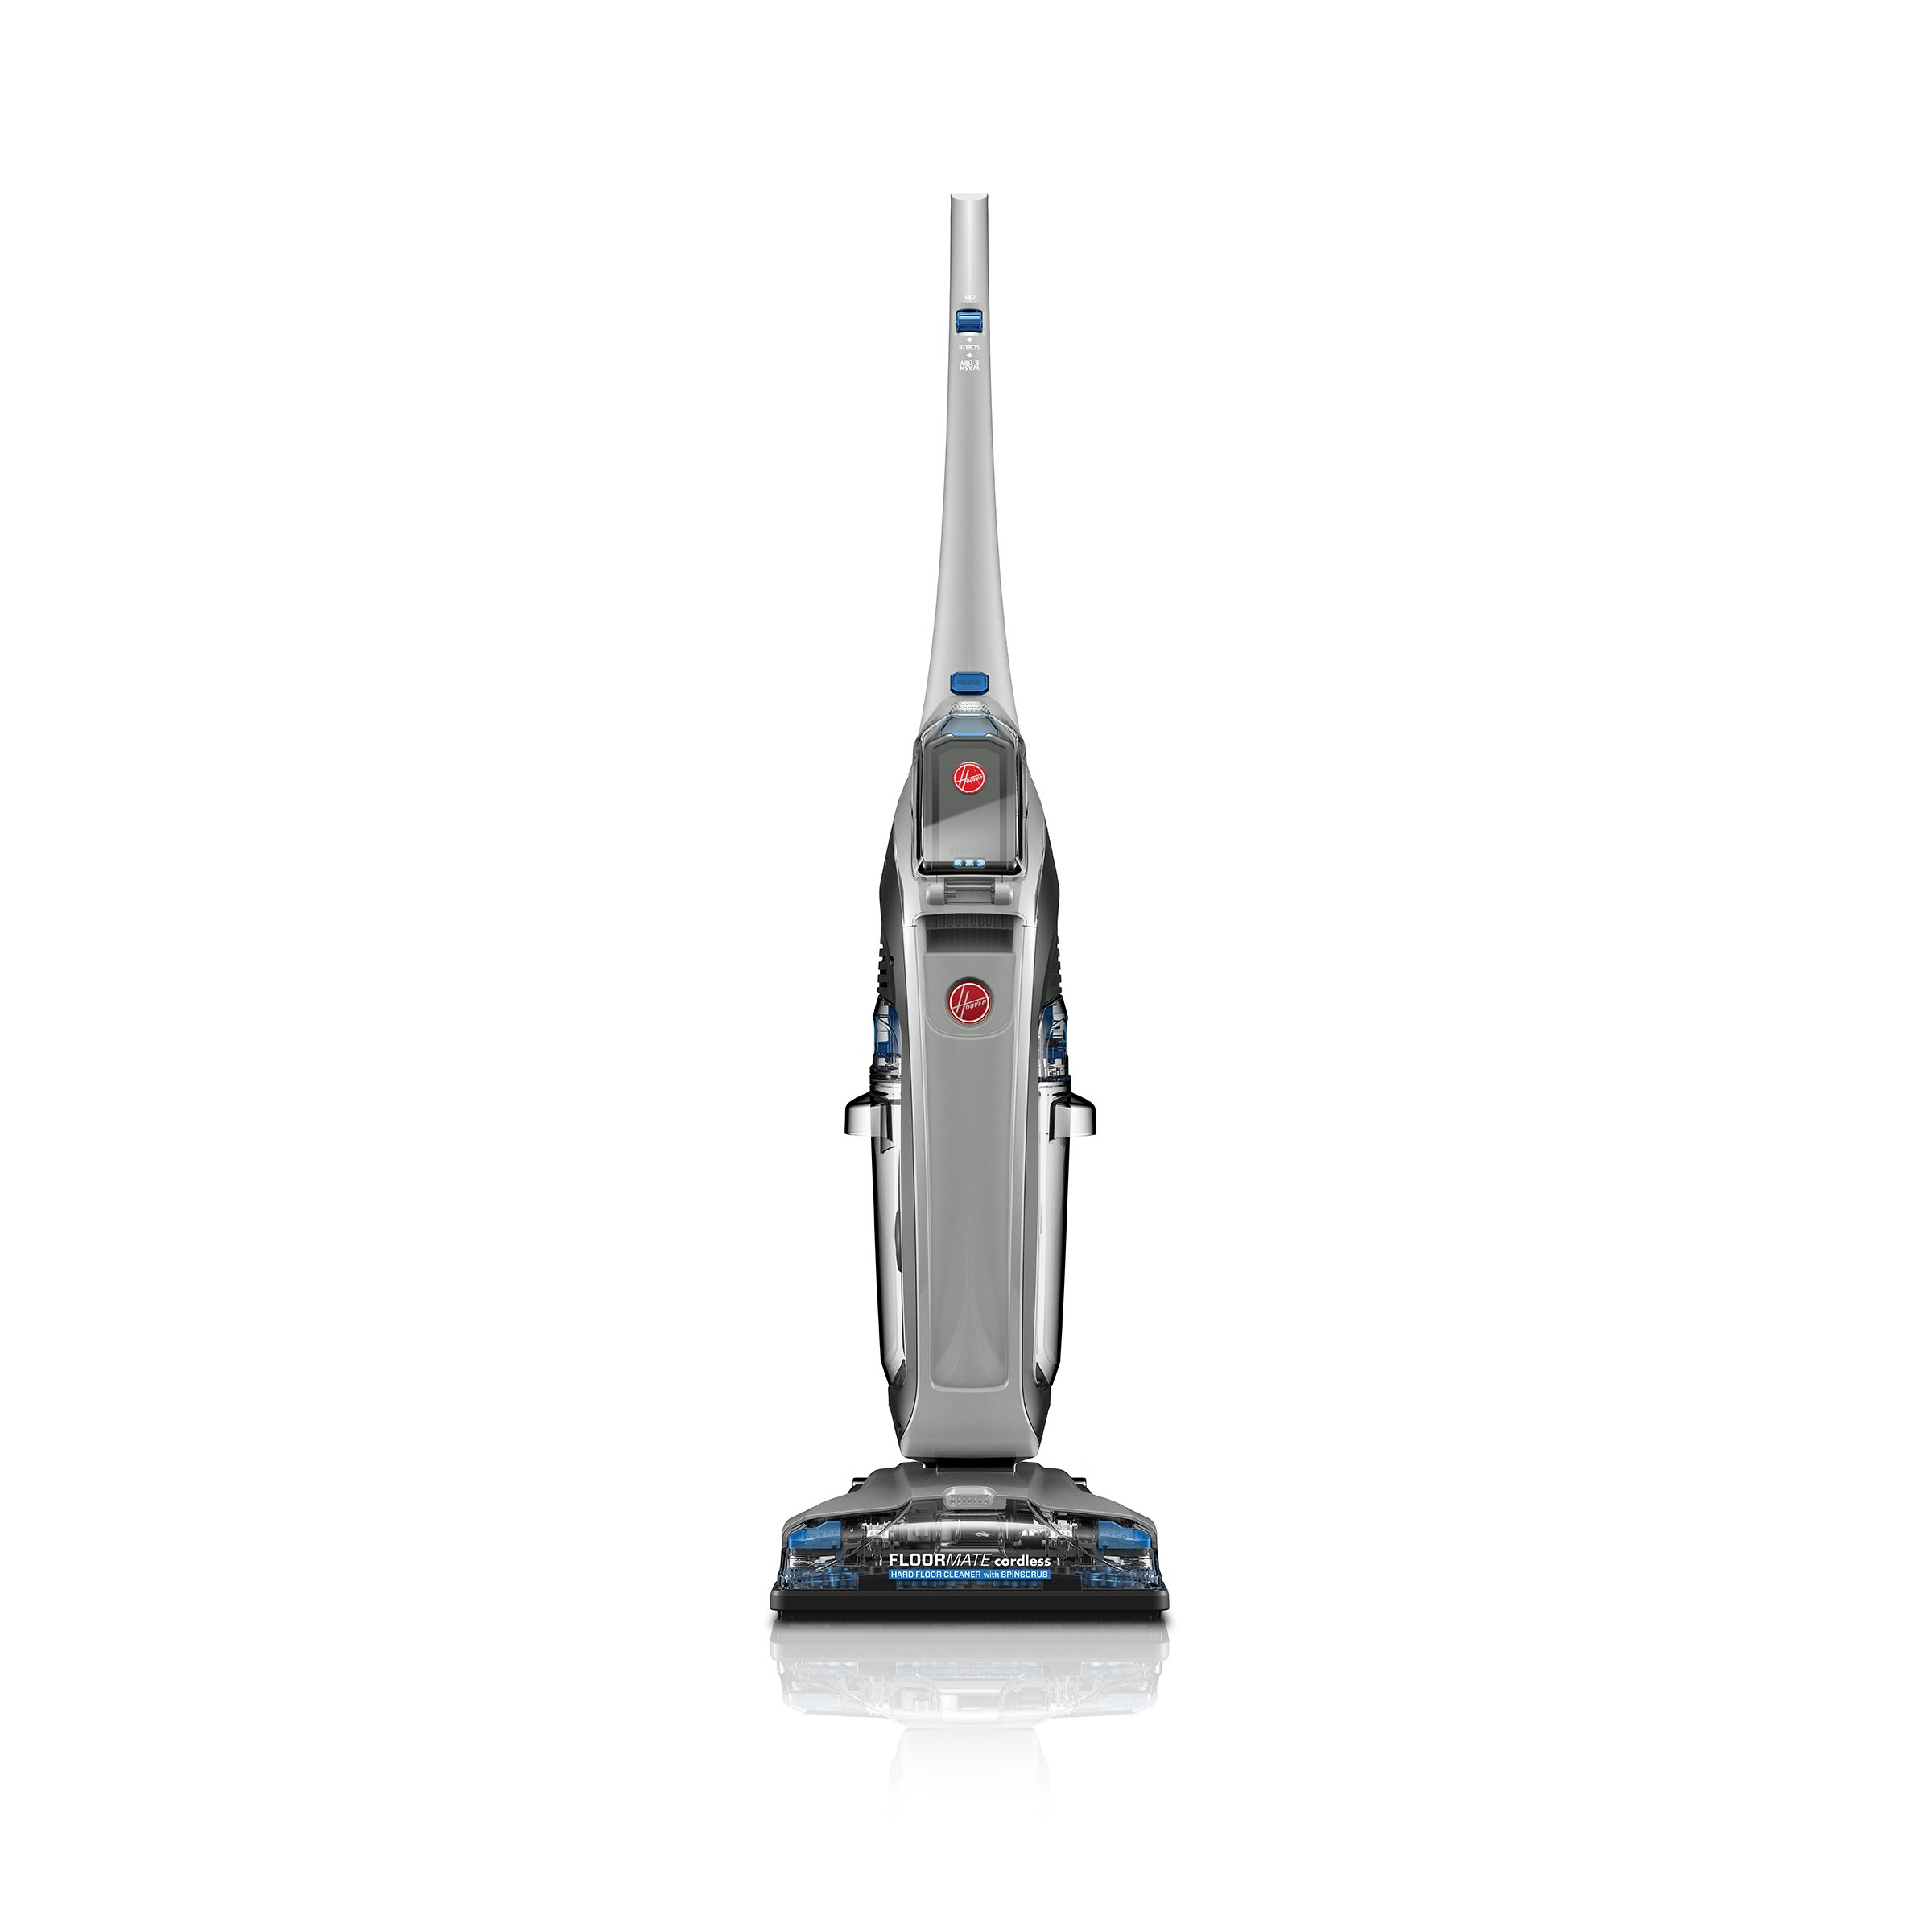 Hoover FloorMate Cordless Hard Floor Cleaner, BH55100PC by Hoover (Image #1)